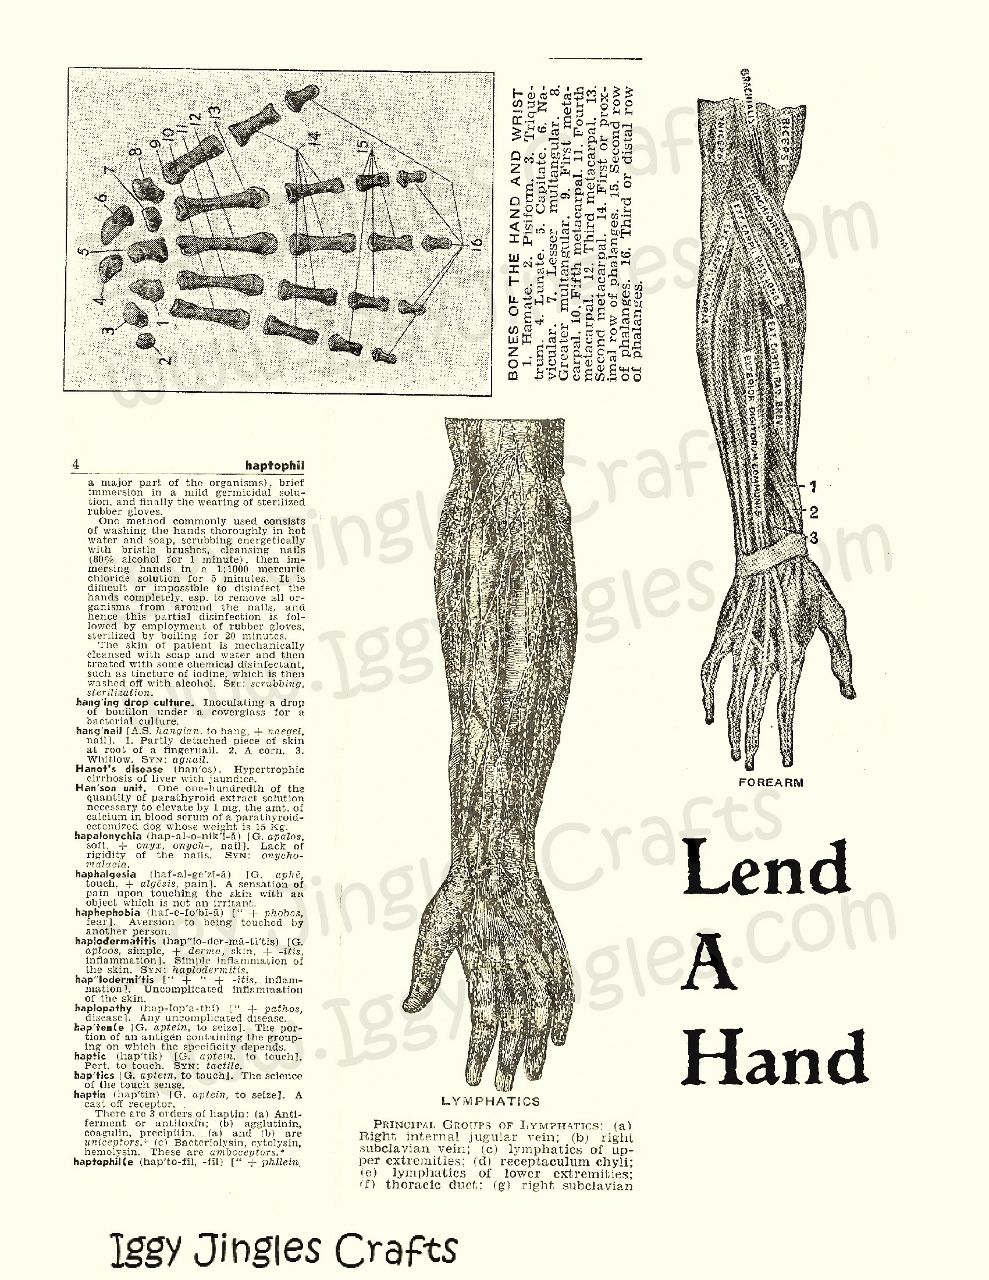 Sepia Lend a Hand Vintage Image Collage Sheet